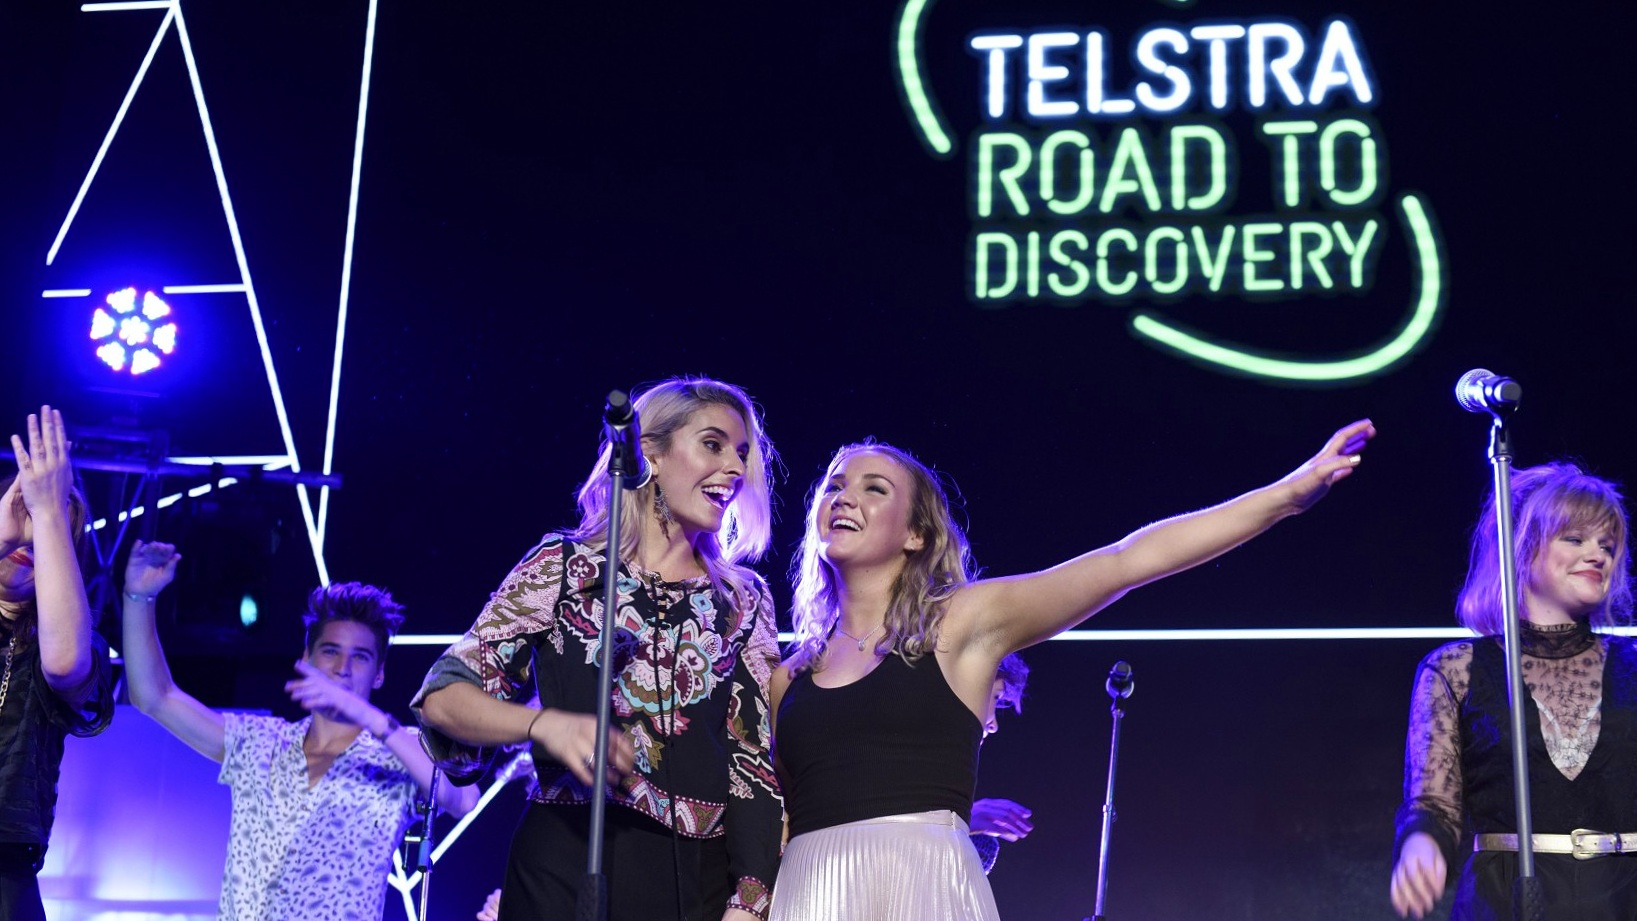 Telstra road to discovery - Grand Final 2015